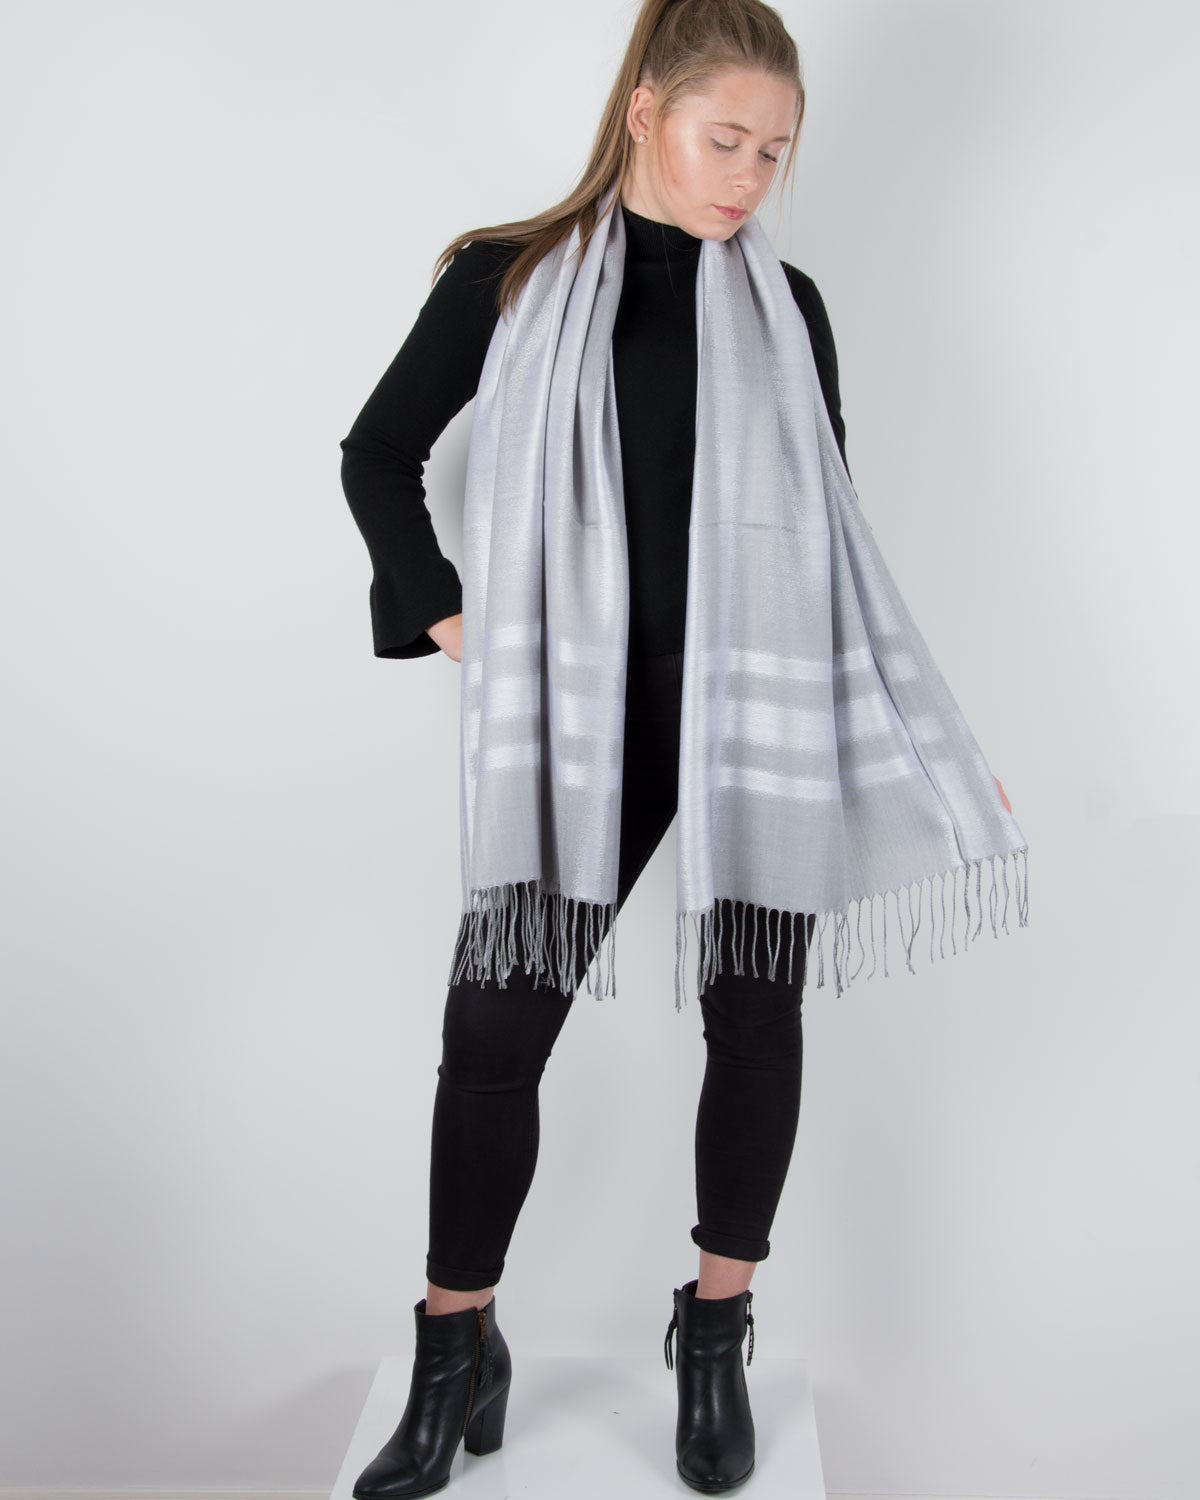 an image showing a silver stripe pashmina